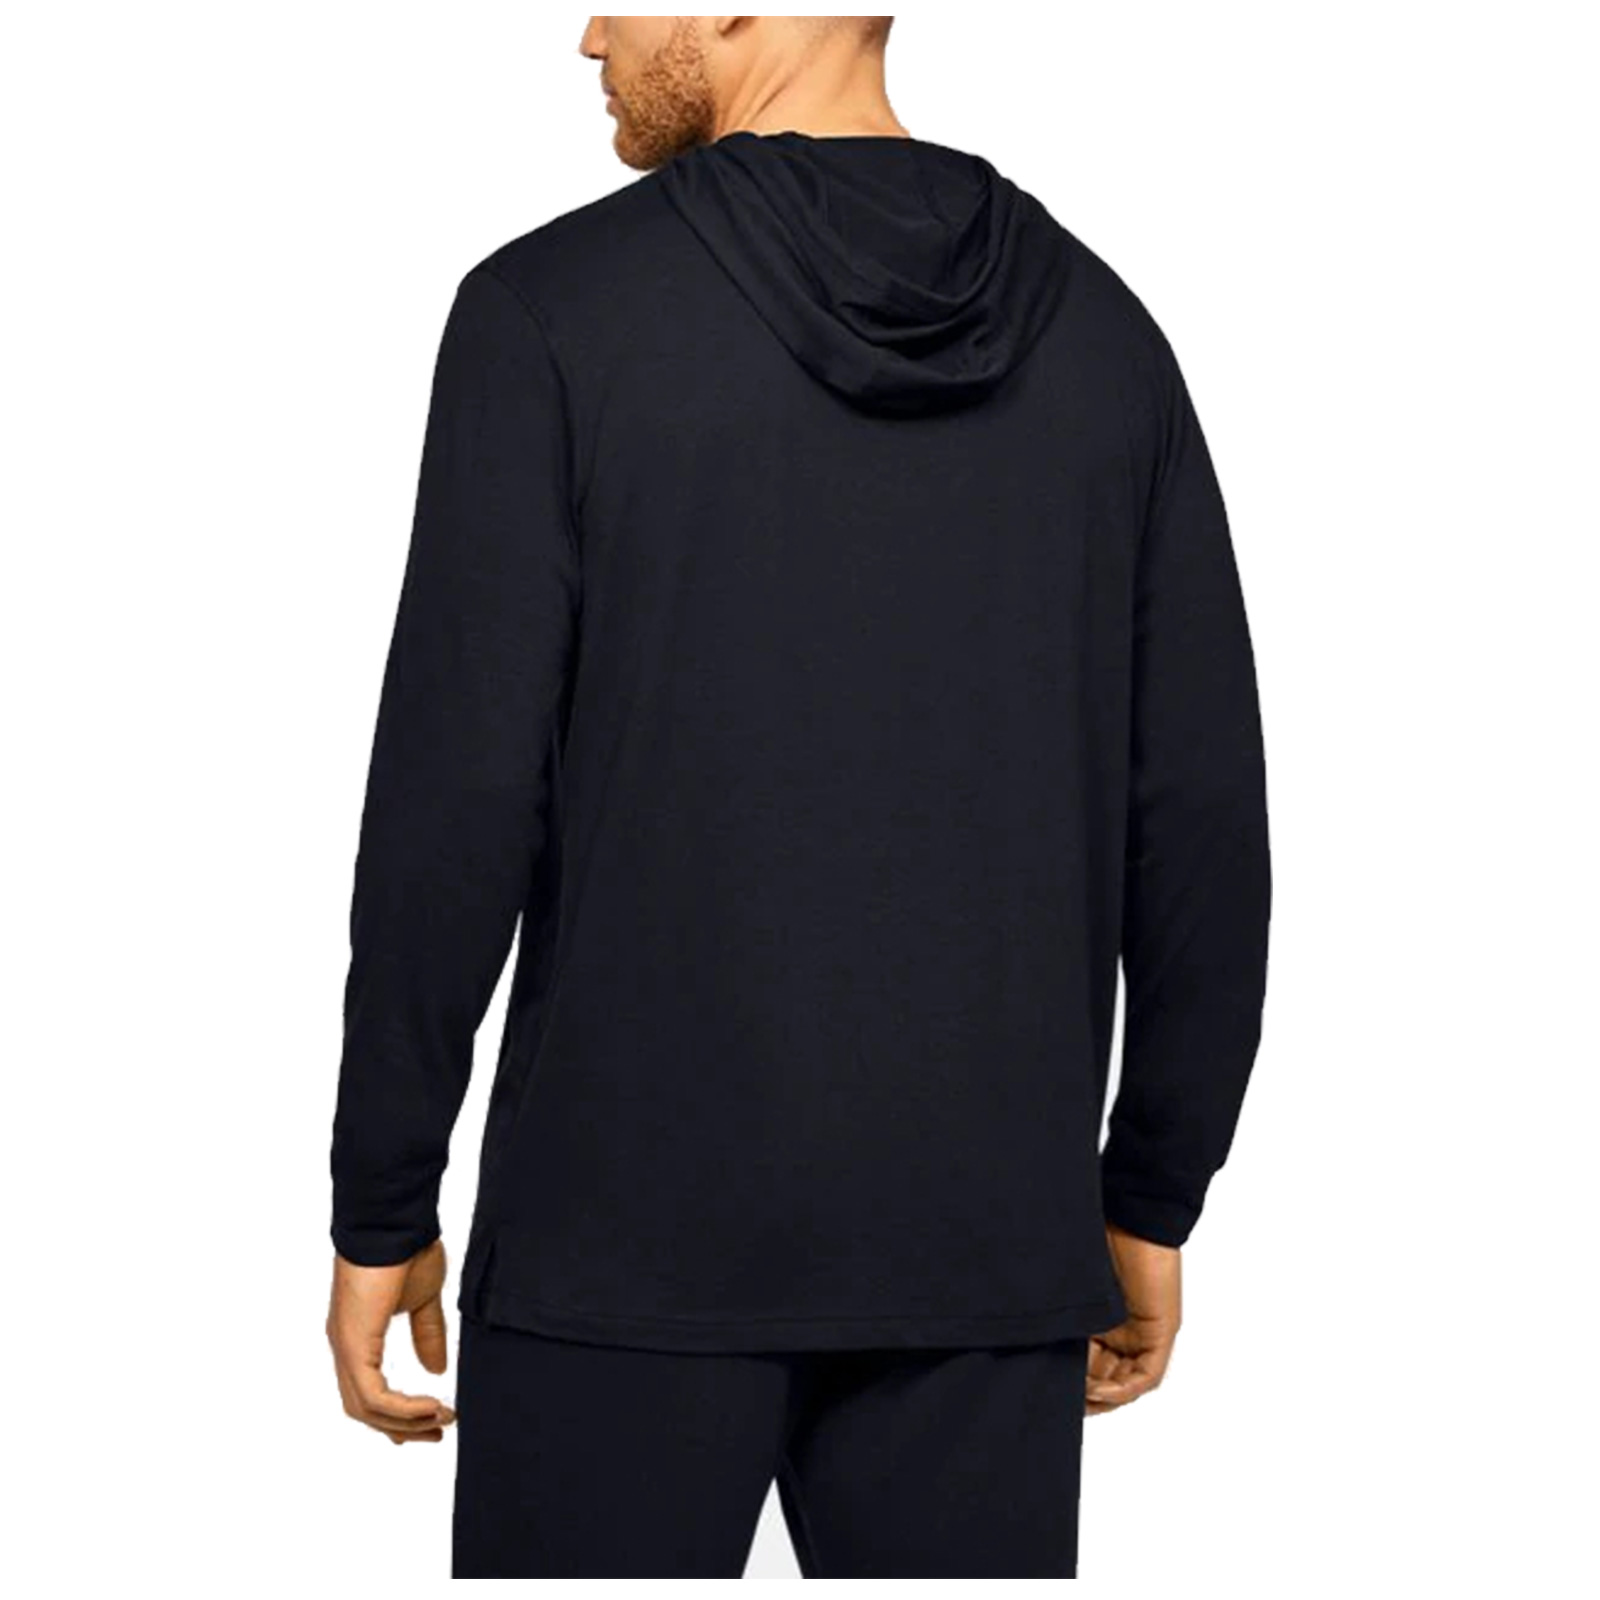 Indexbild 3 - Under Armour Mens Sportstyle Hoodie - Gym Pullover Hooded Top Sports UA